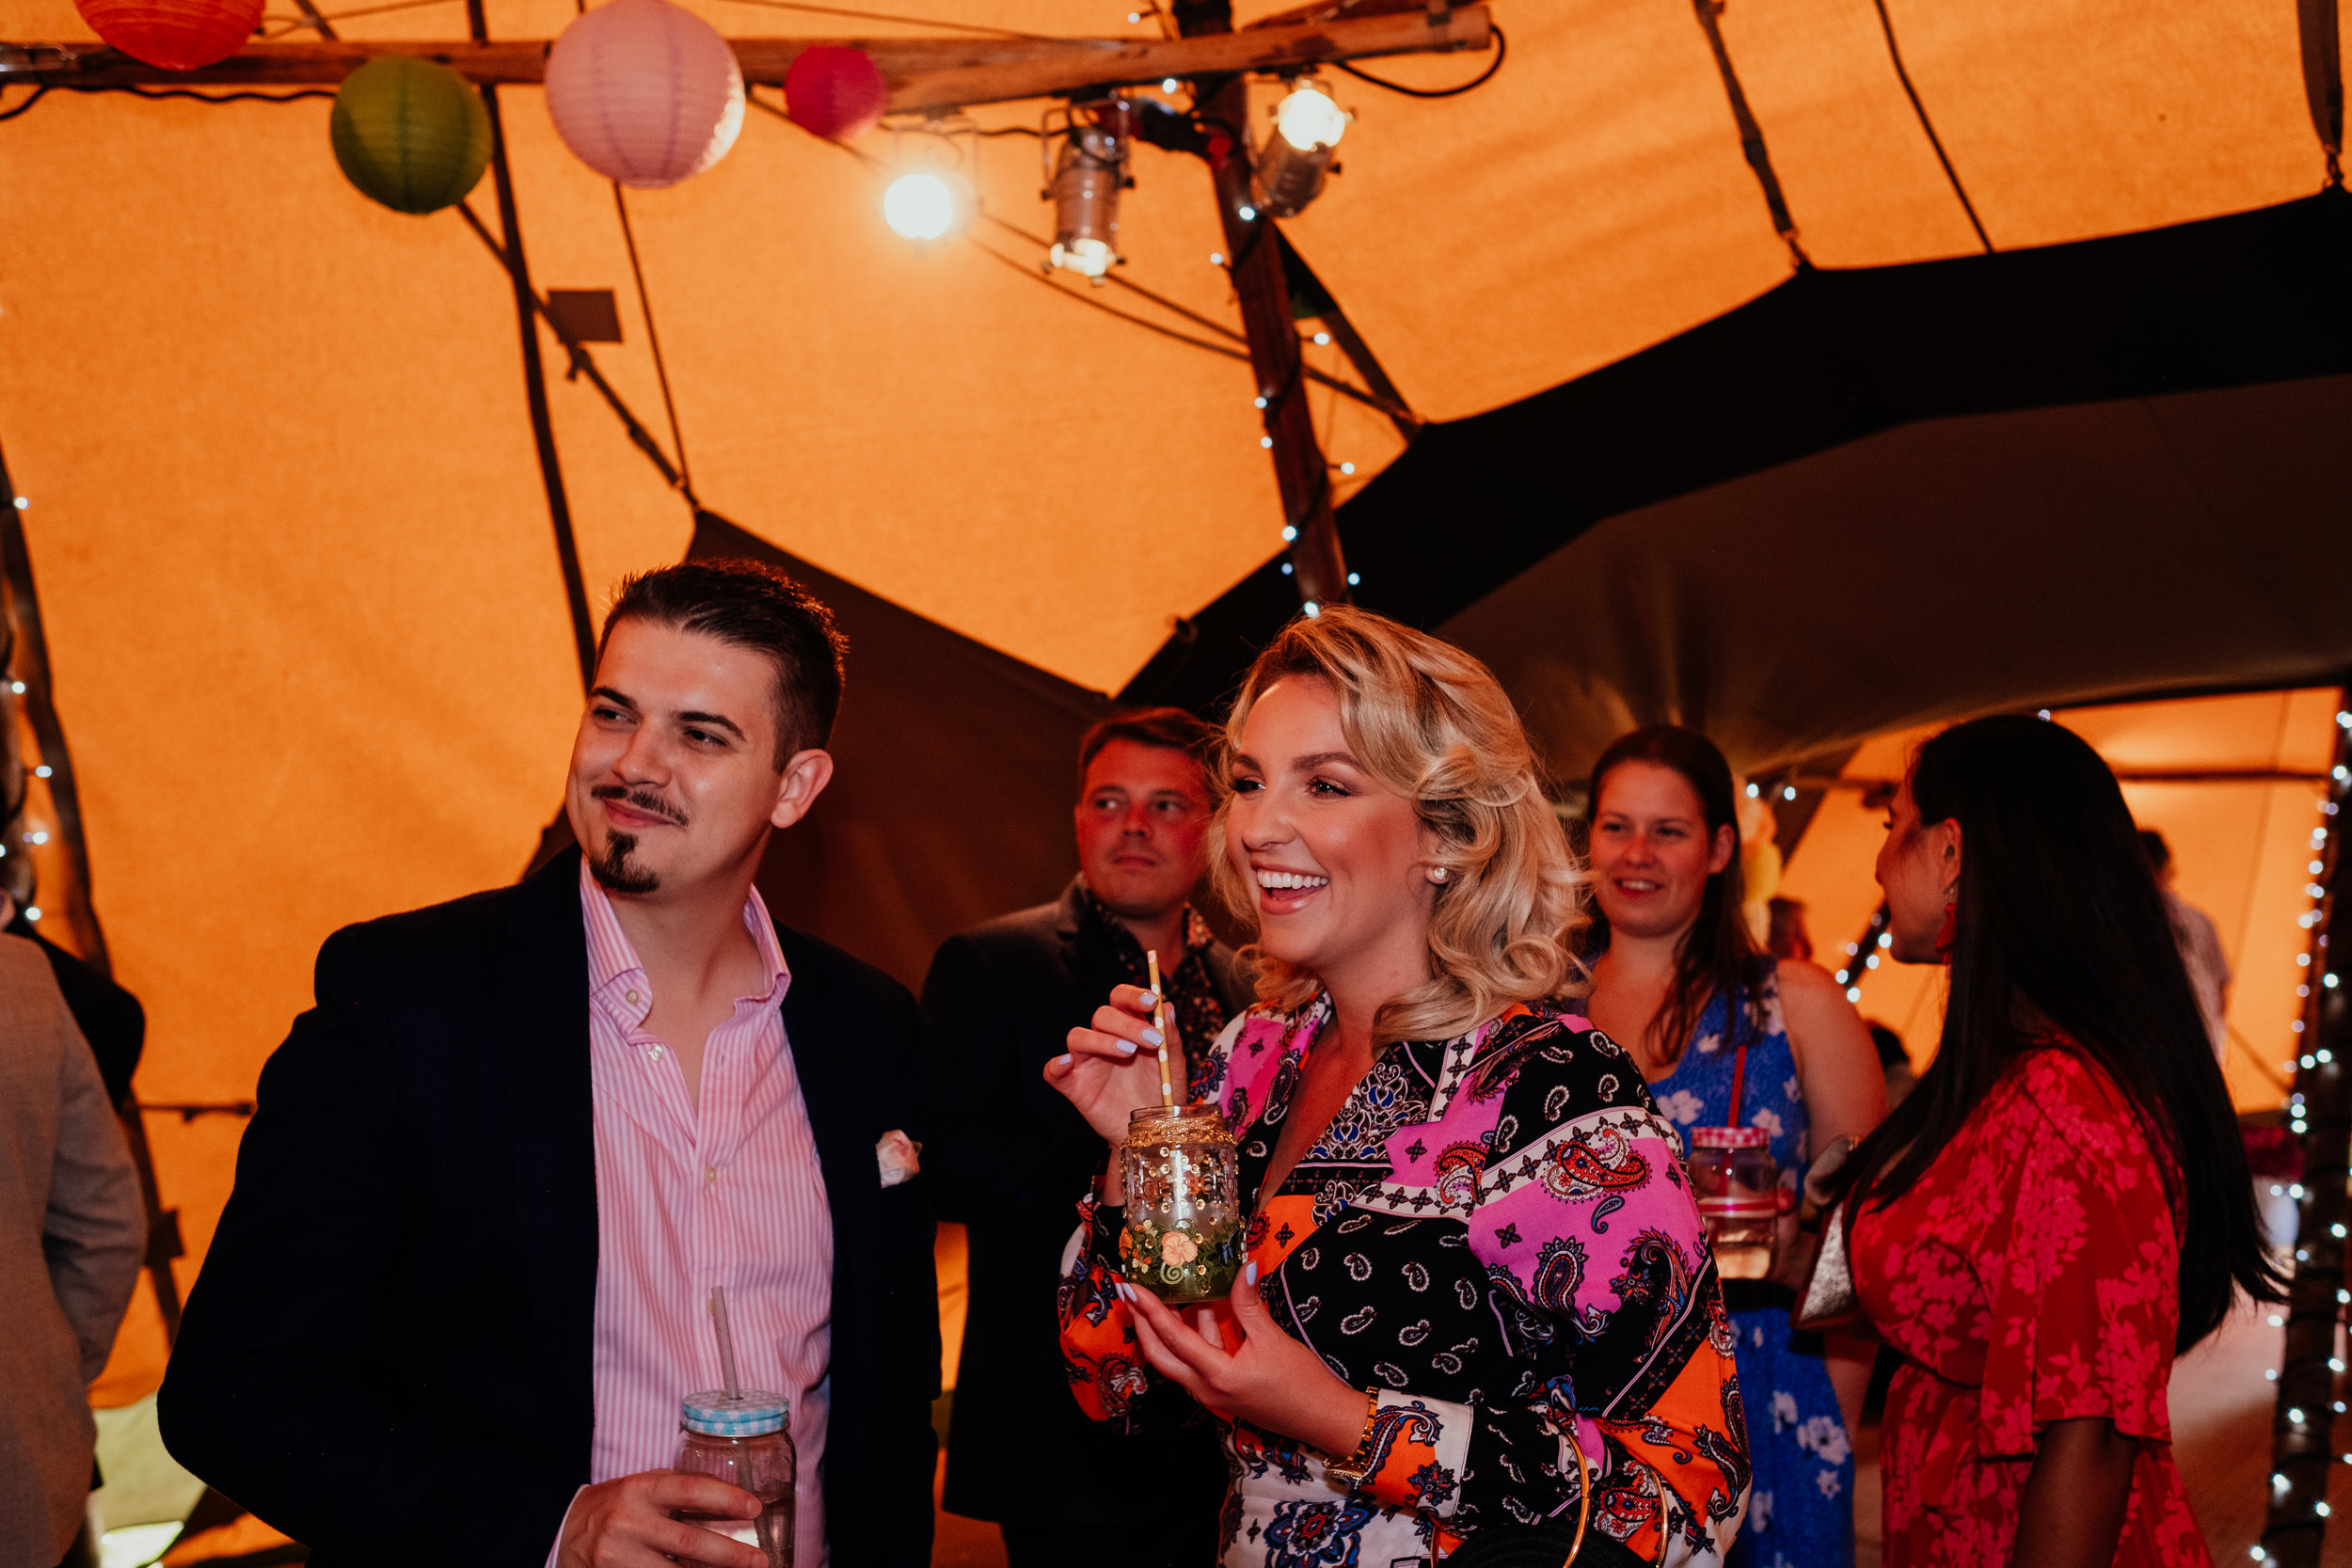 Guests drinking wine at Four Oaks Farm tipi wedding